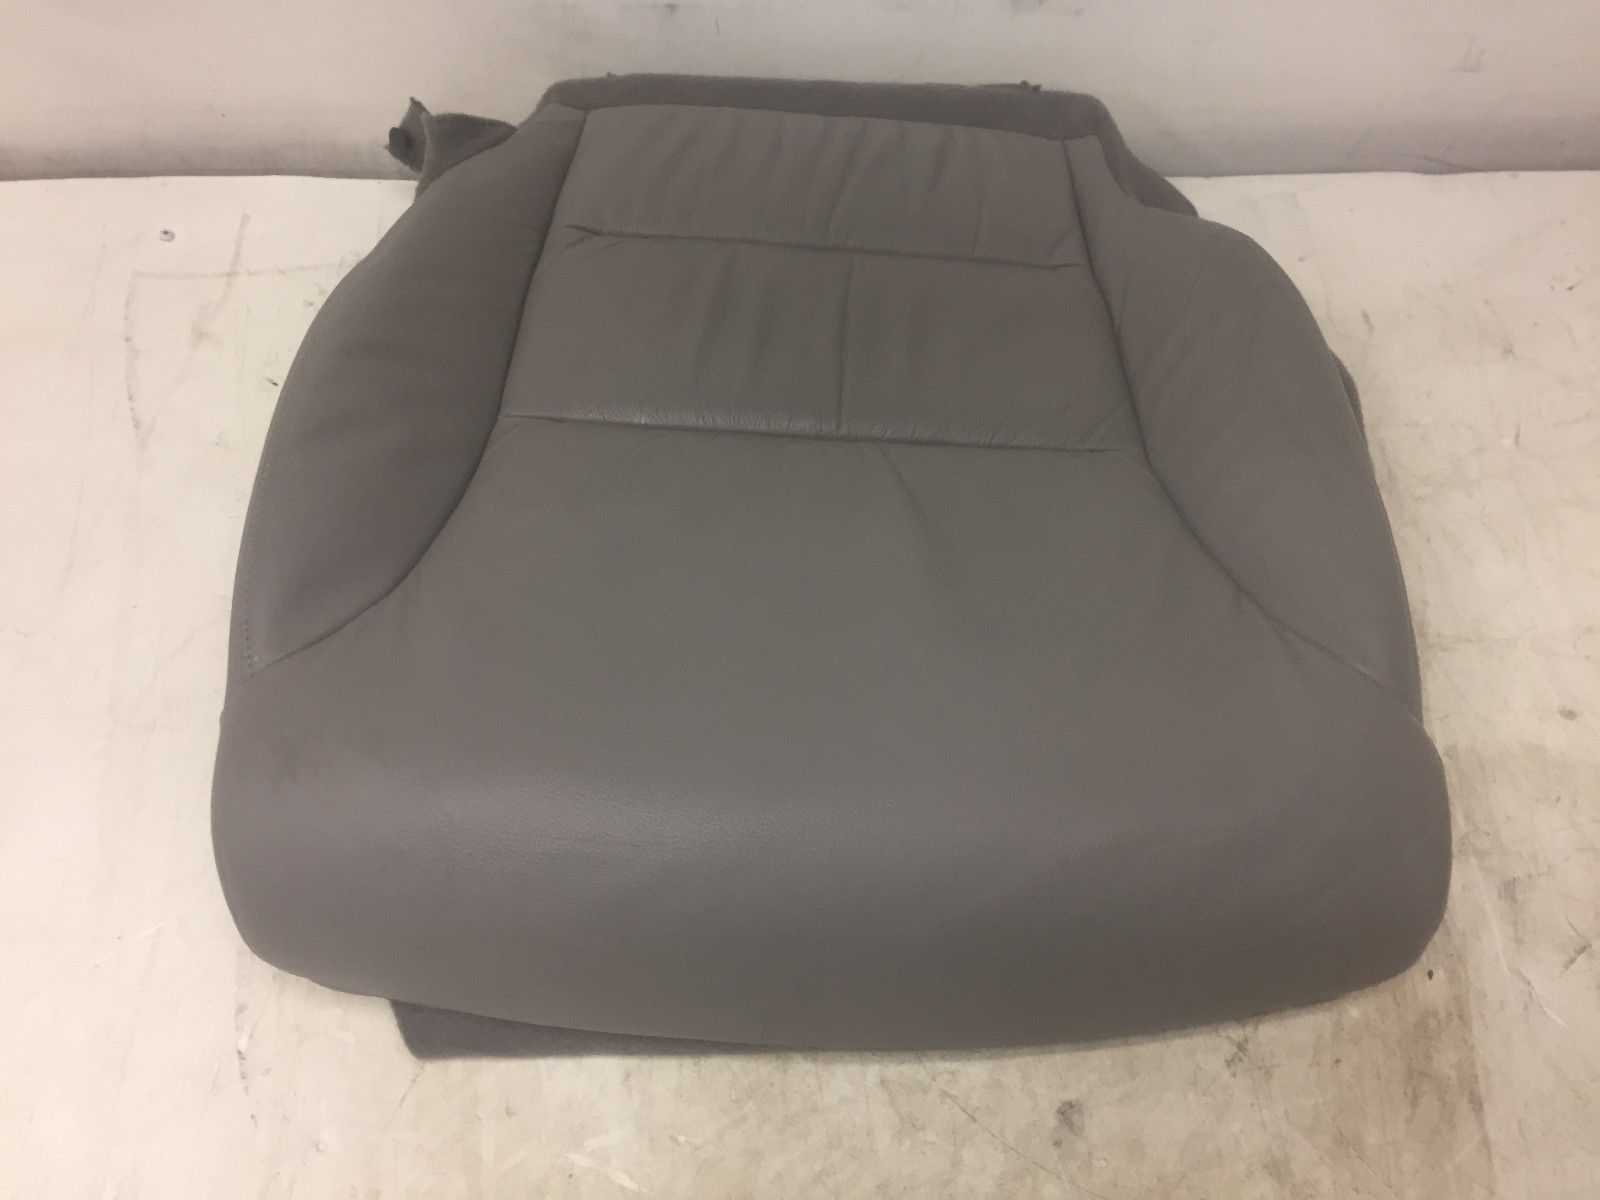 2013 Honda CR-V Front Left Driver Said Lower Grey Cover Leather Seats